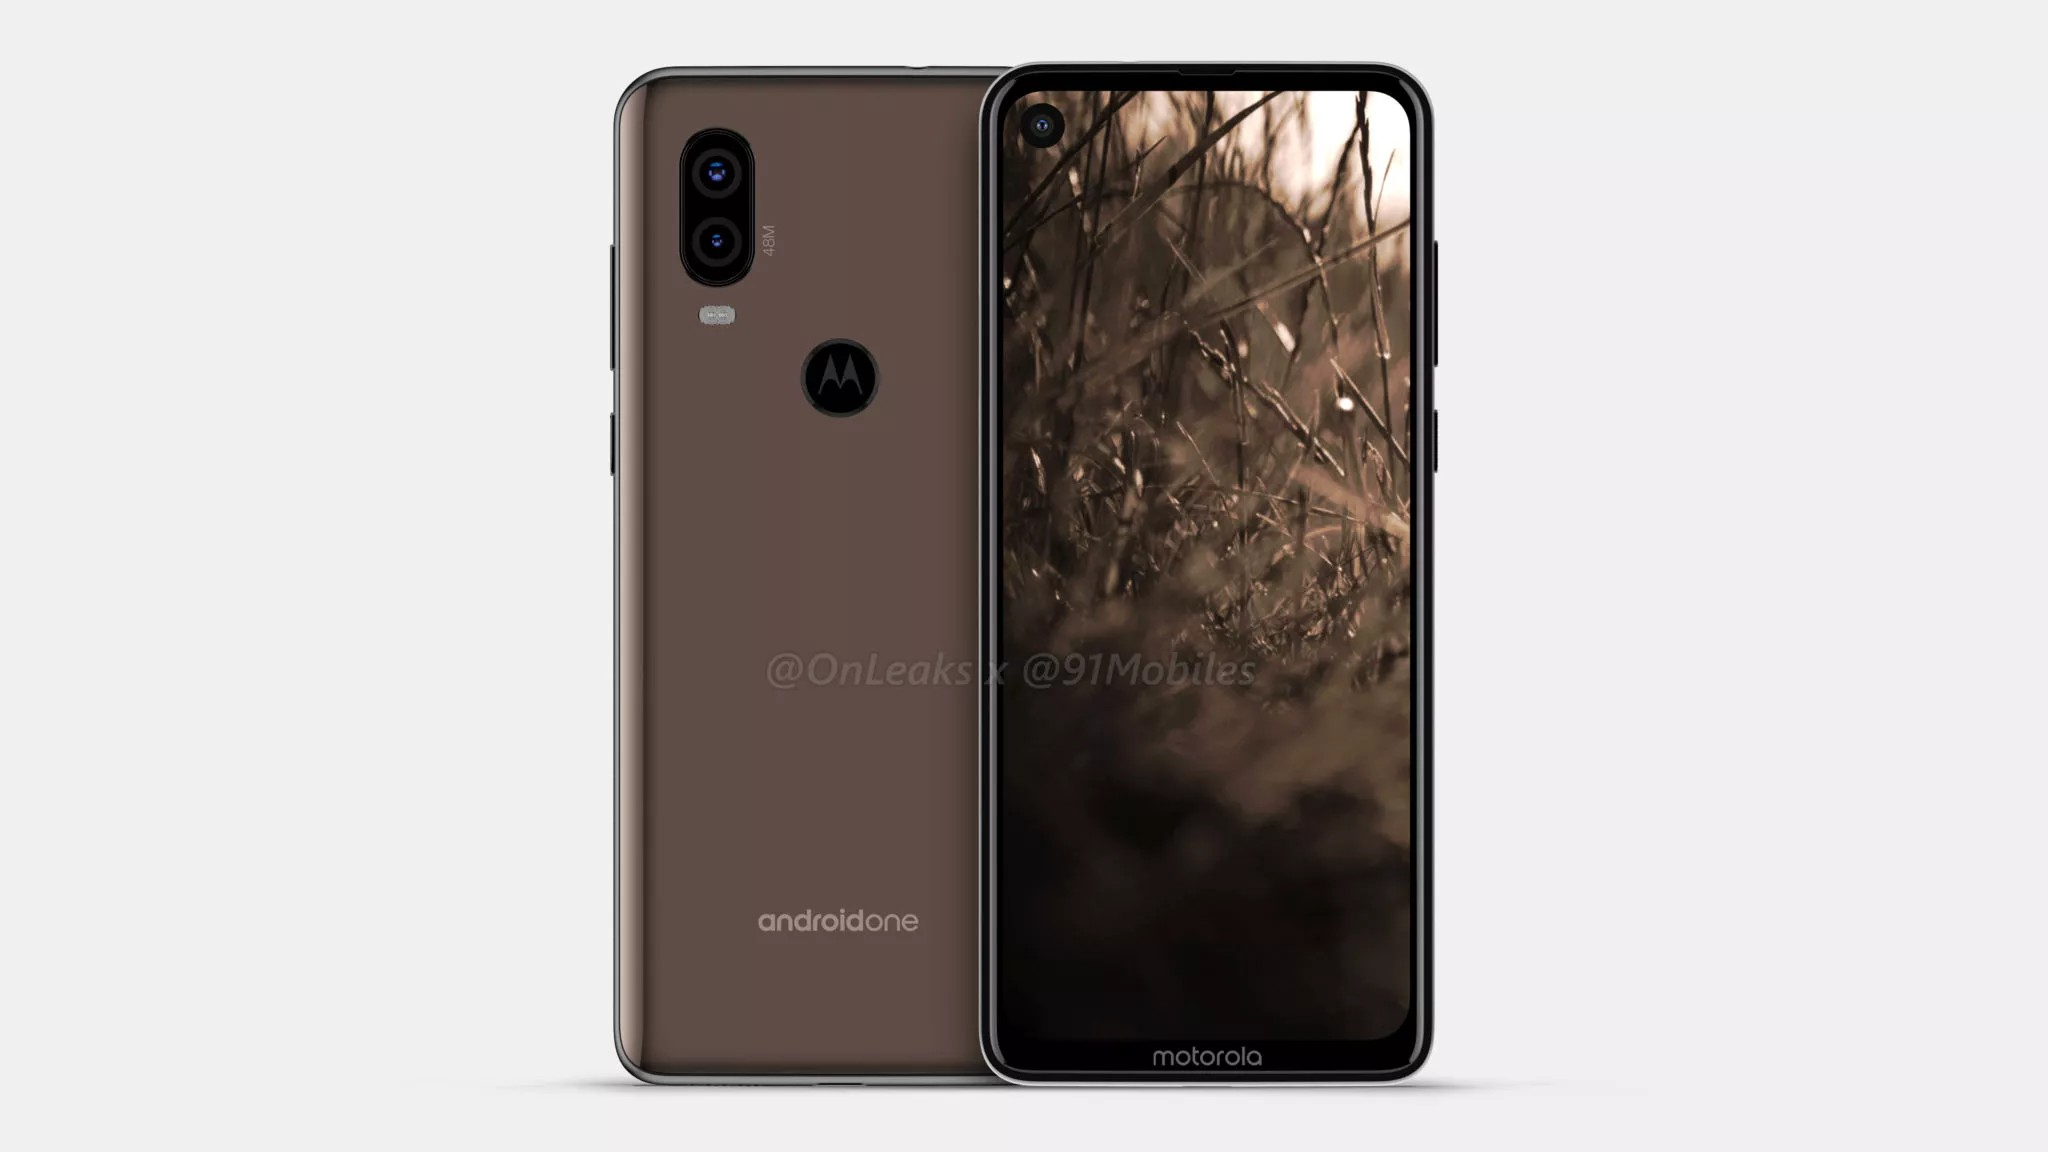 Motorola P40 specifications and design leaked